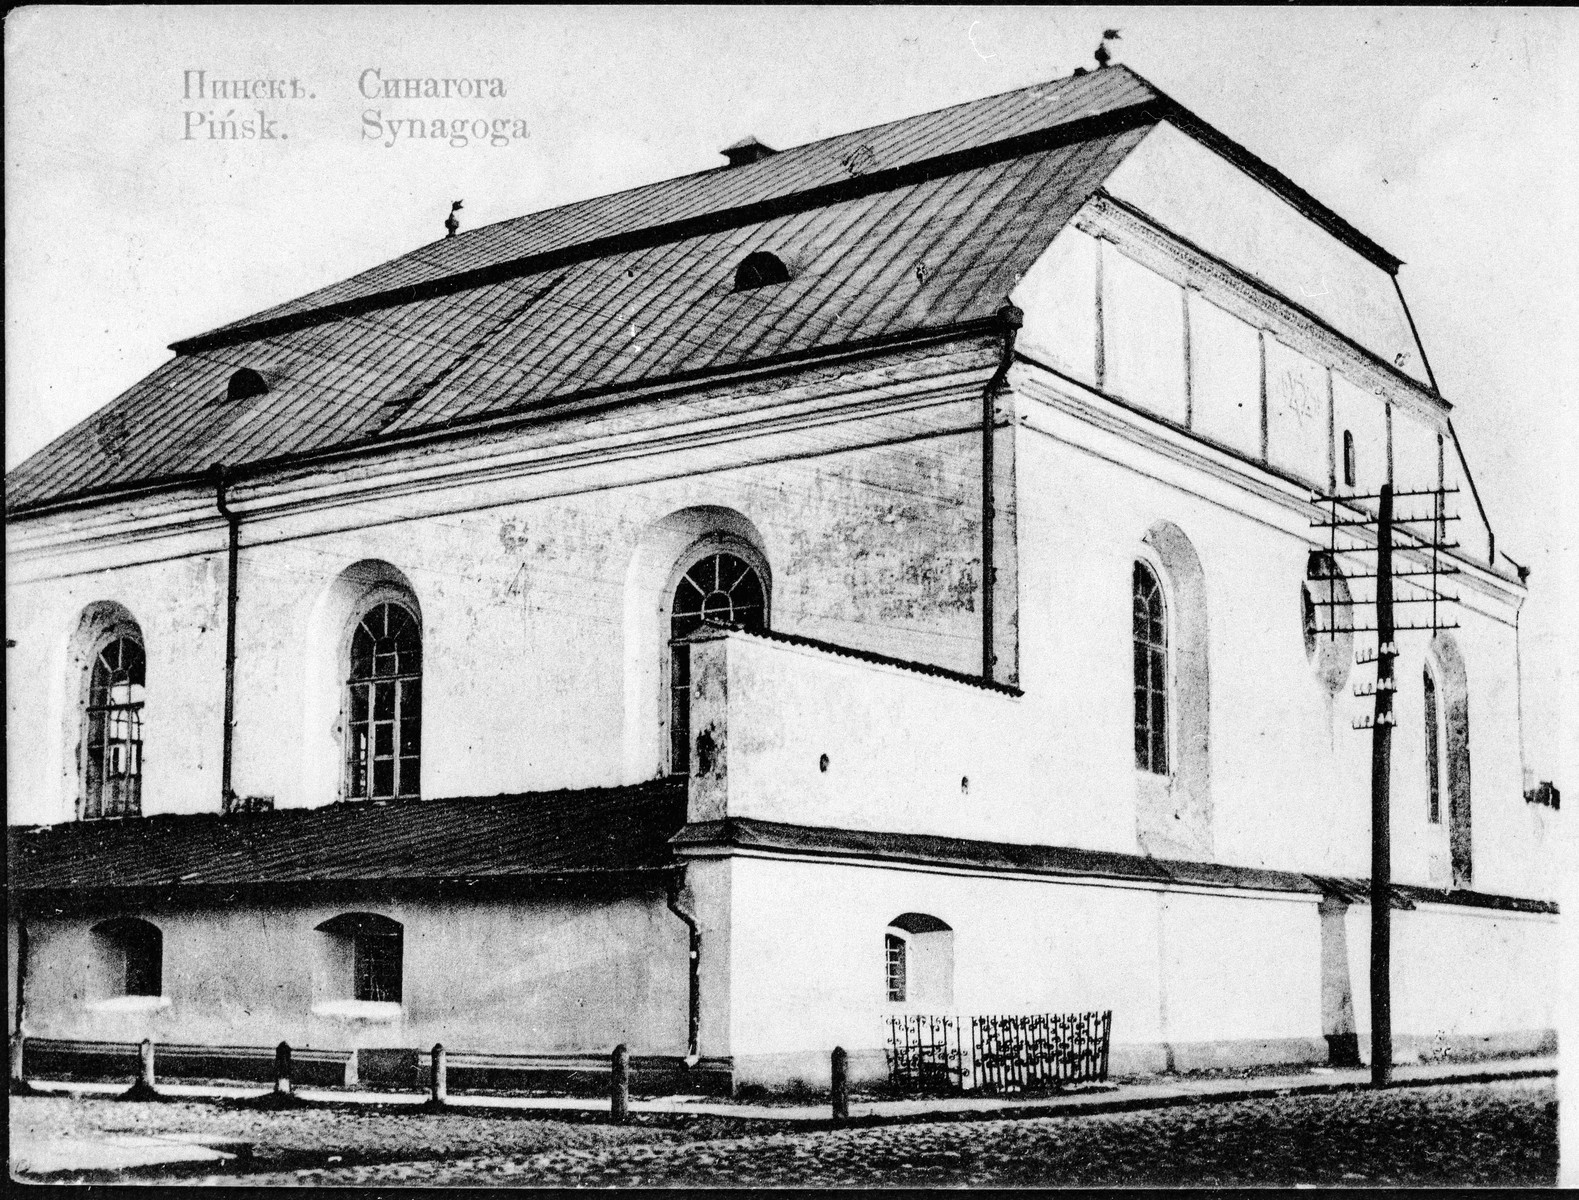 Exterior view of the Pinsk synagogue.